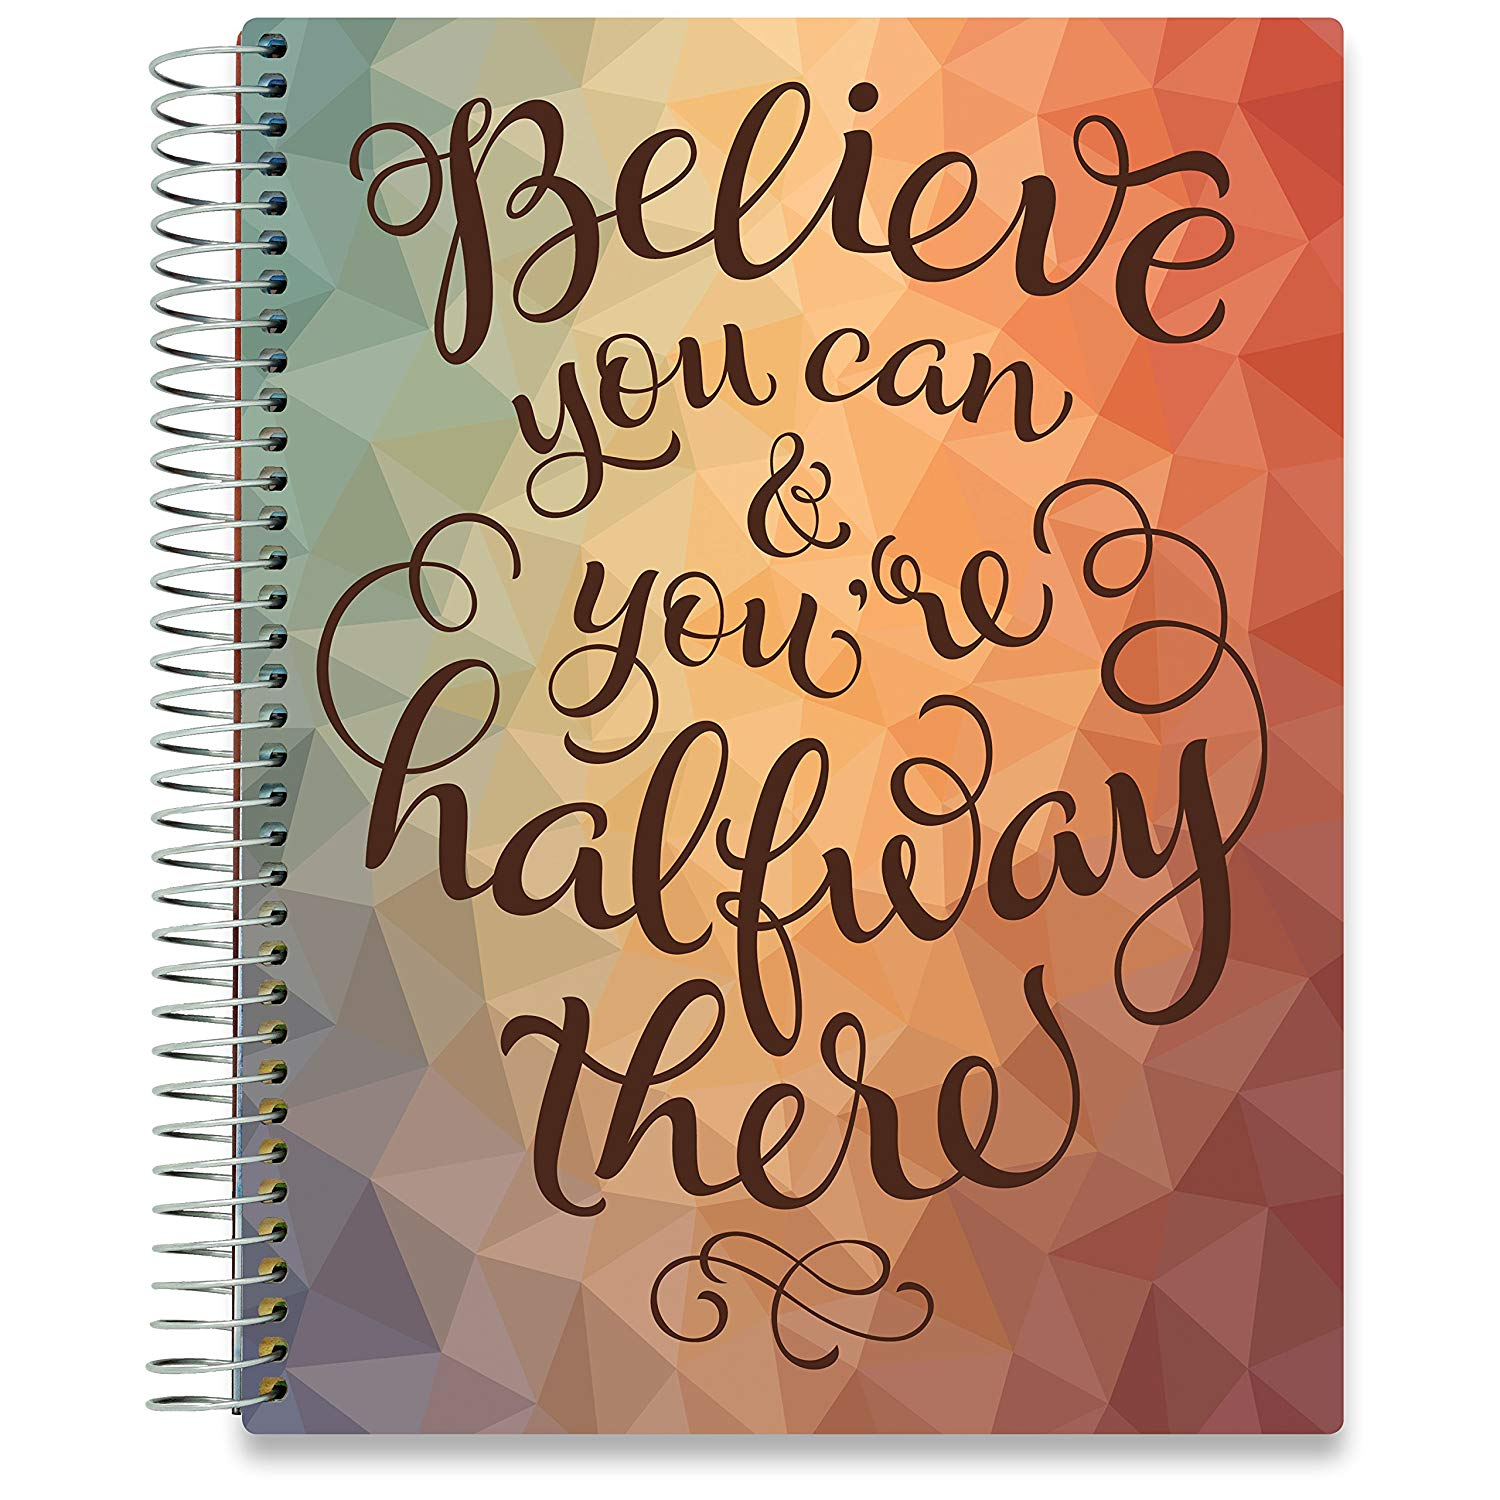 NEW: April 2020-2021 Planner - 8.5x11 - Believe U Can-Office Product-Tools4Wisdom